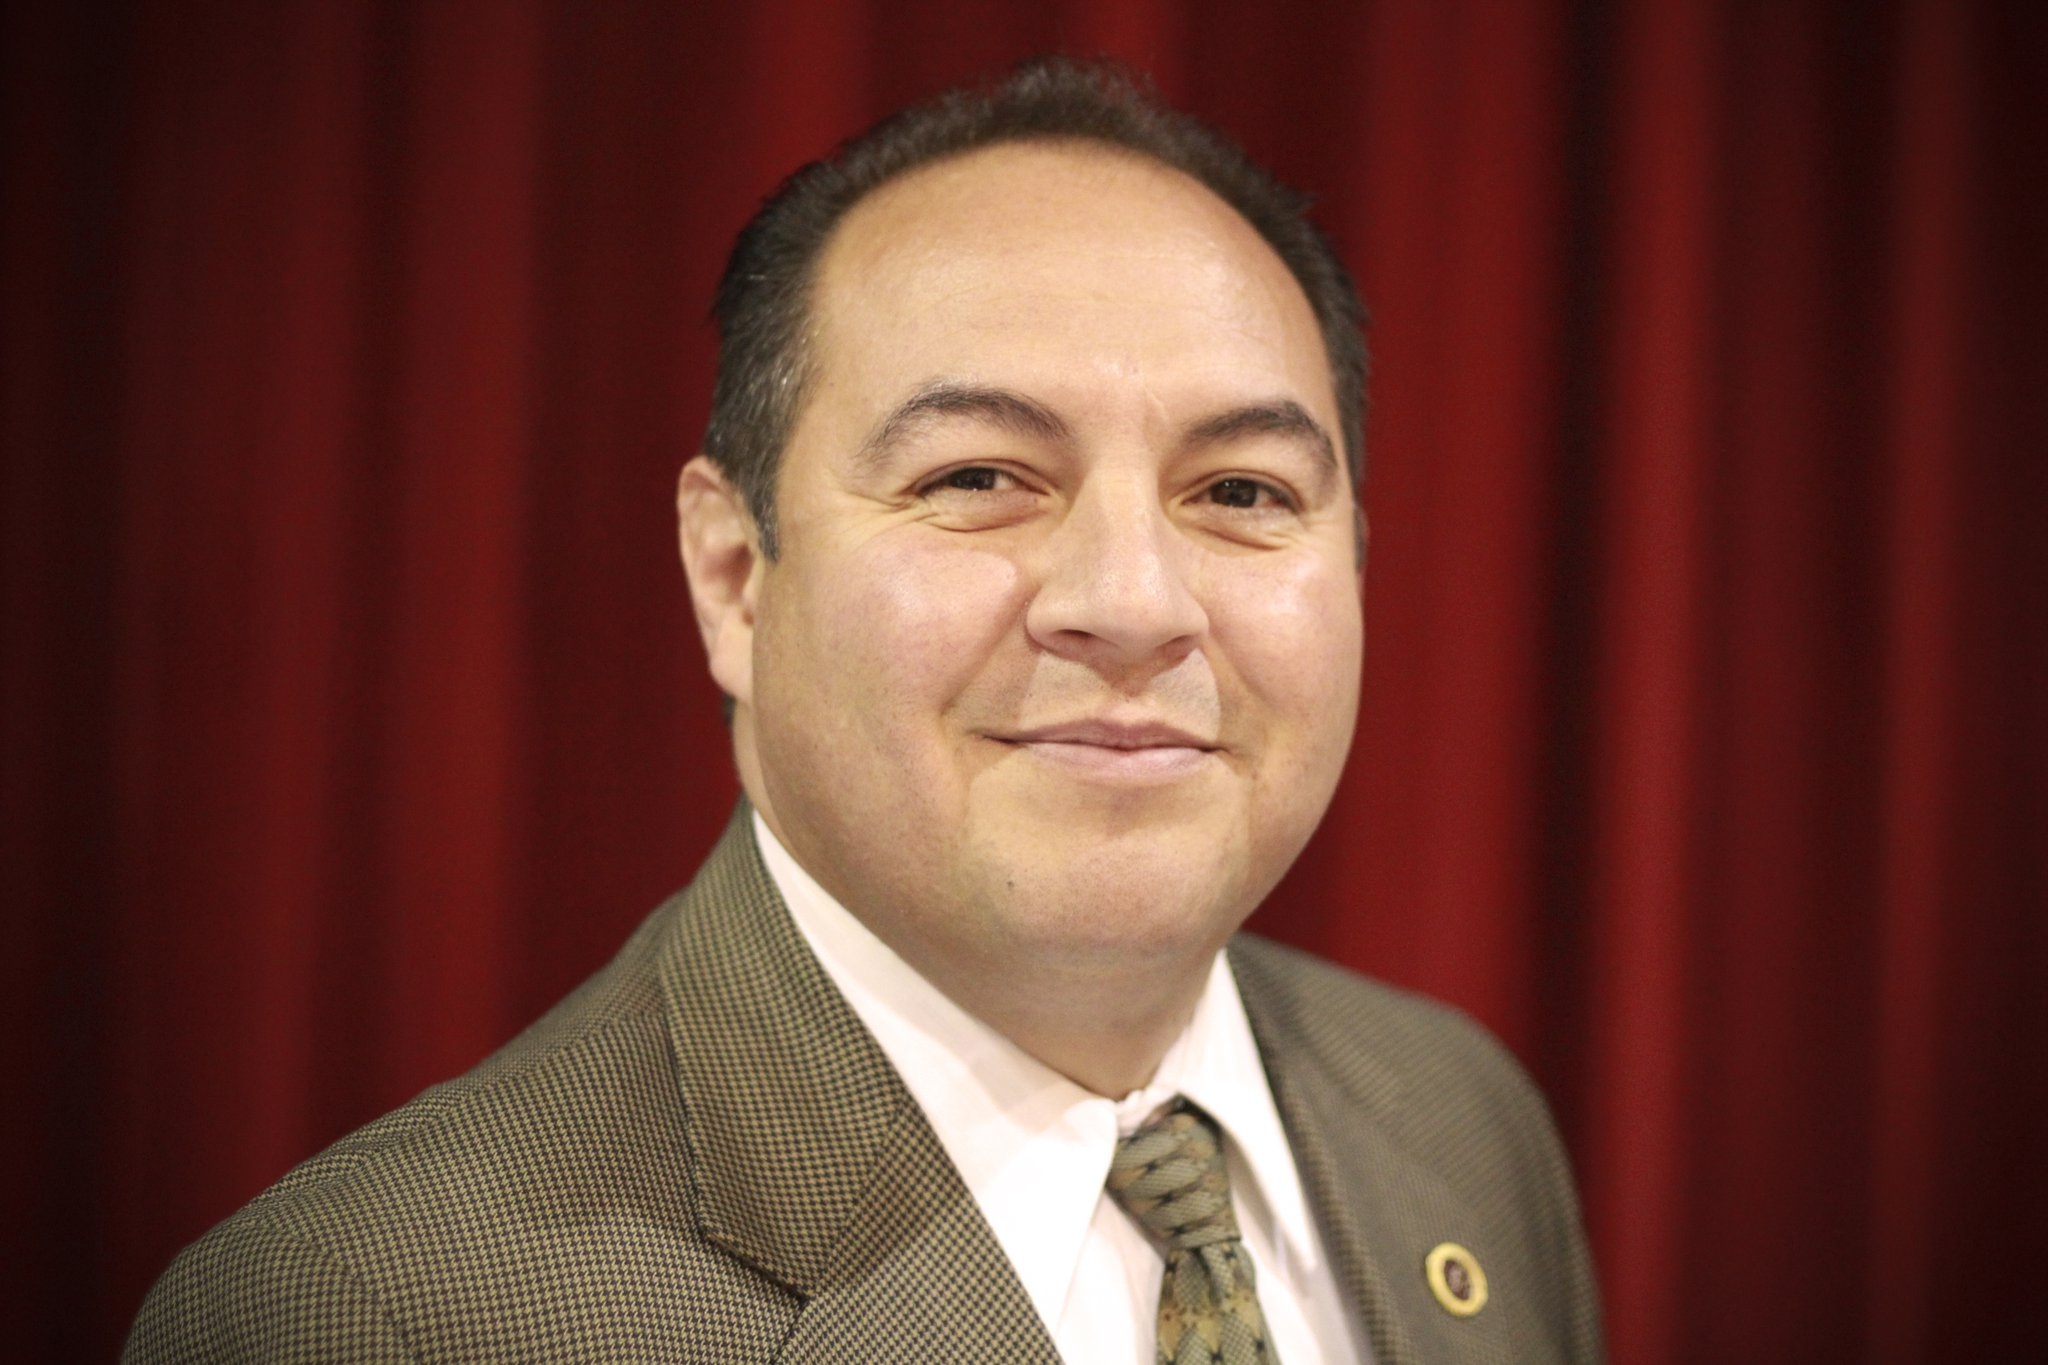 Saginaw Chippewa Tribe swears in Frank Cloutier as new leader